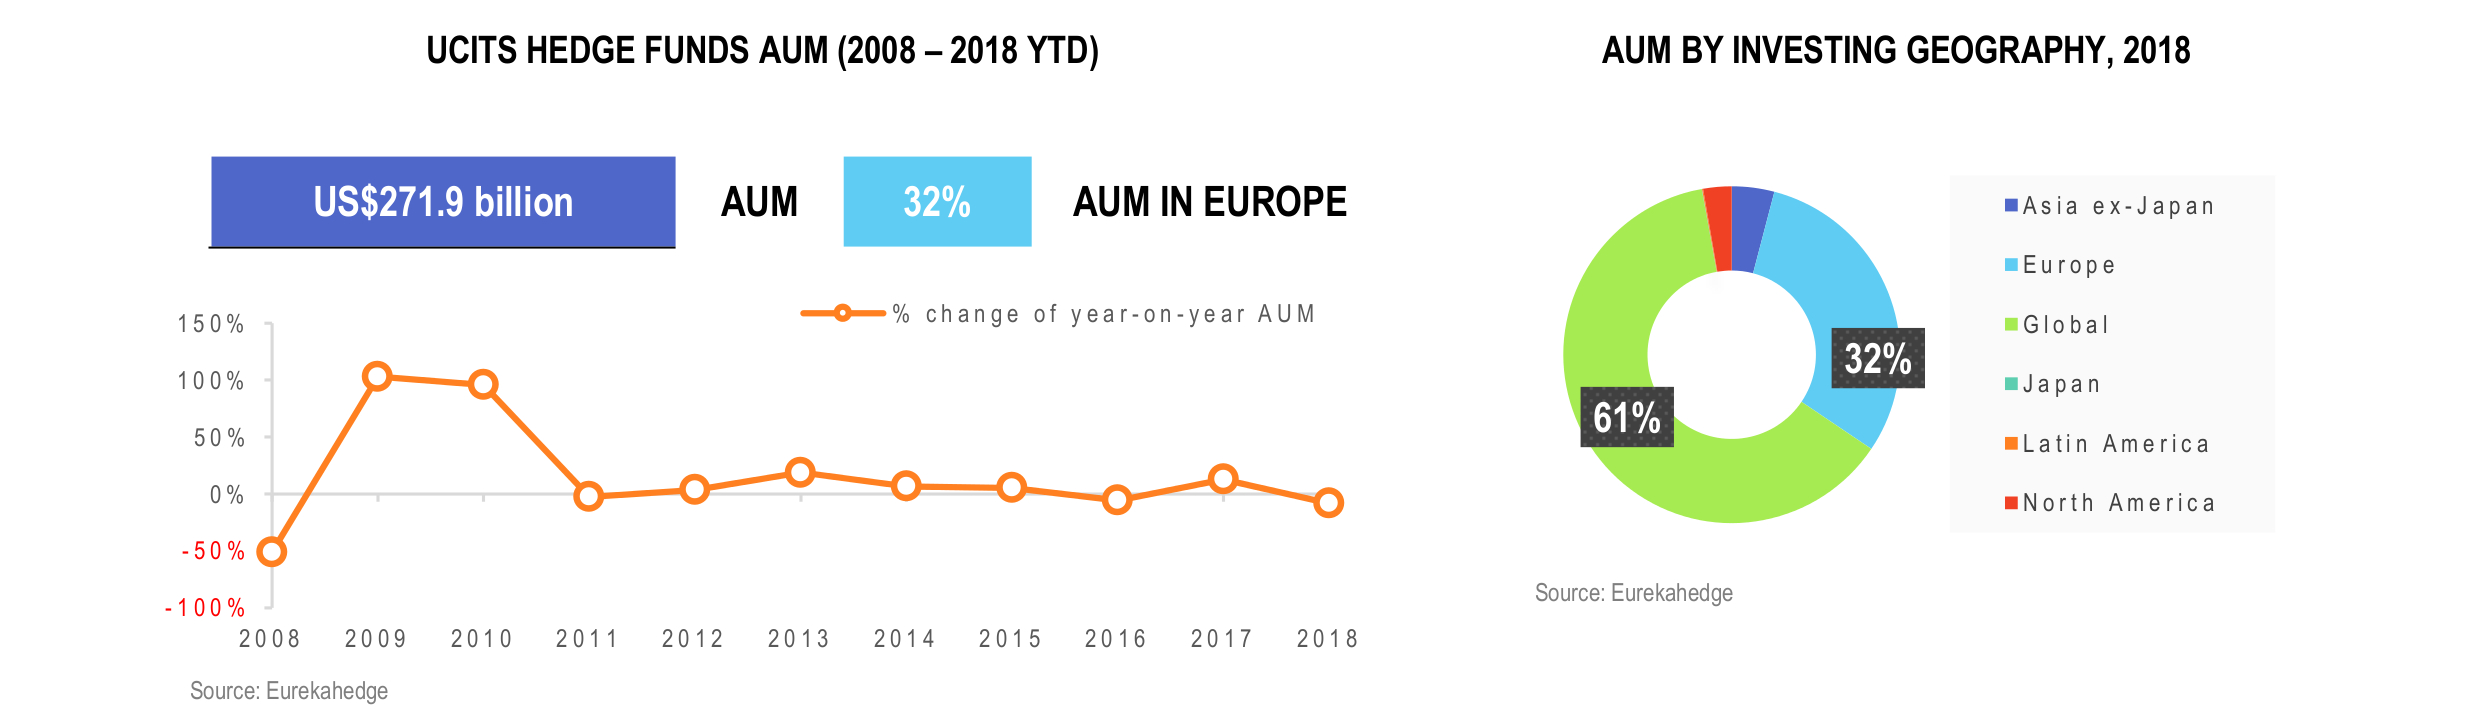 UCITS Hedge Funds Infographic February 2019 - AUM